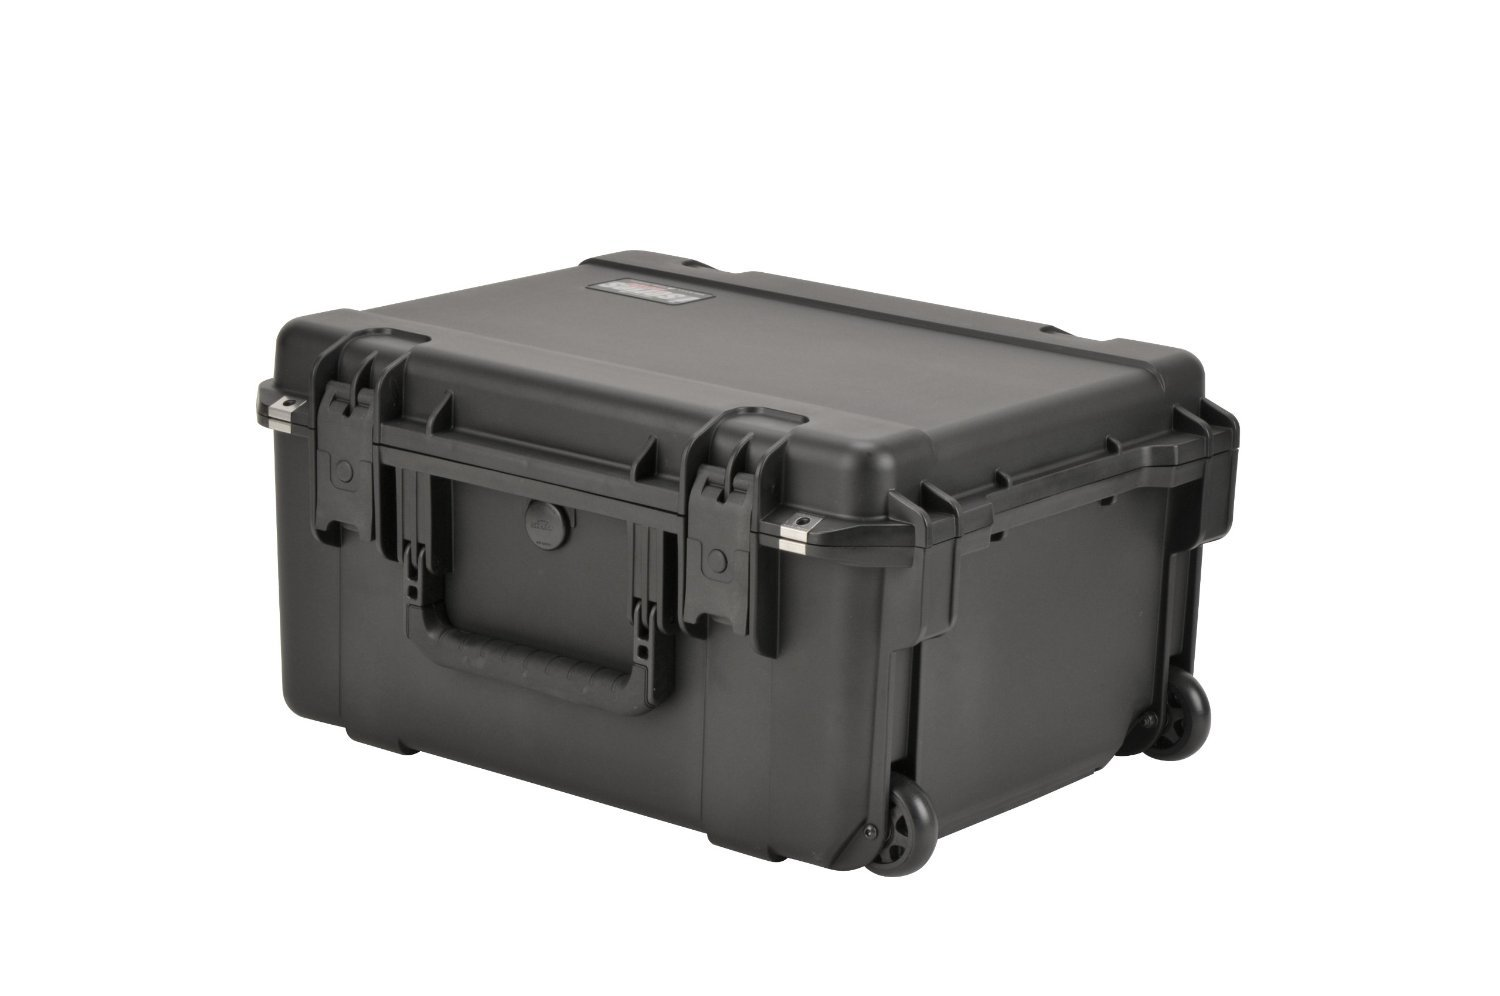 SKB Equipment Case, 20 1/2 x 15 1/2 x 10 with Wheels and Dividers [並行輸入品]   B0160LZXFE